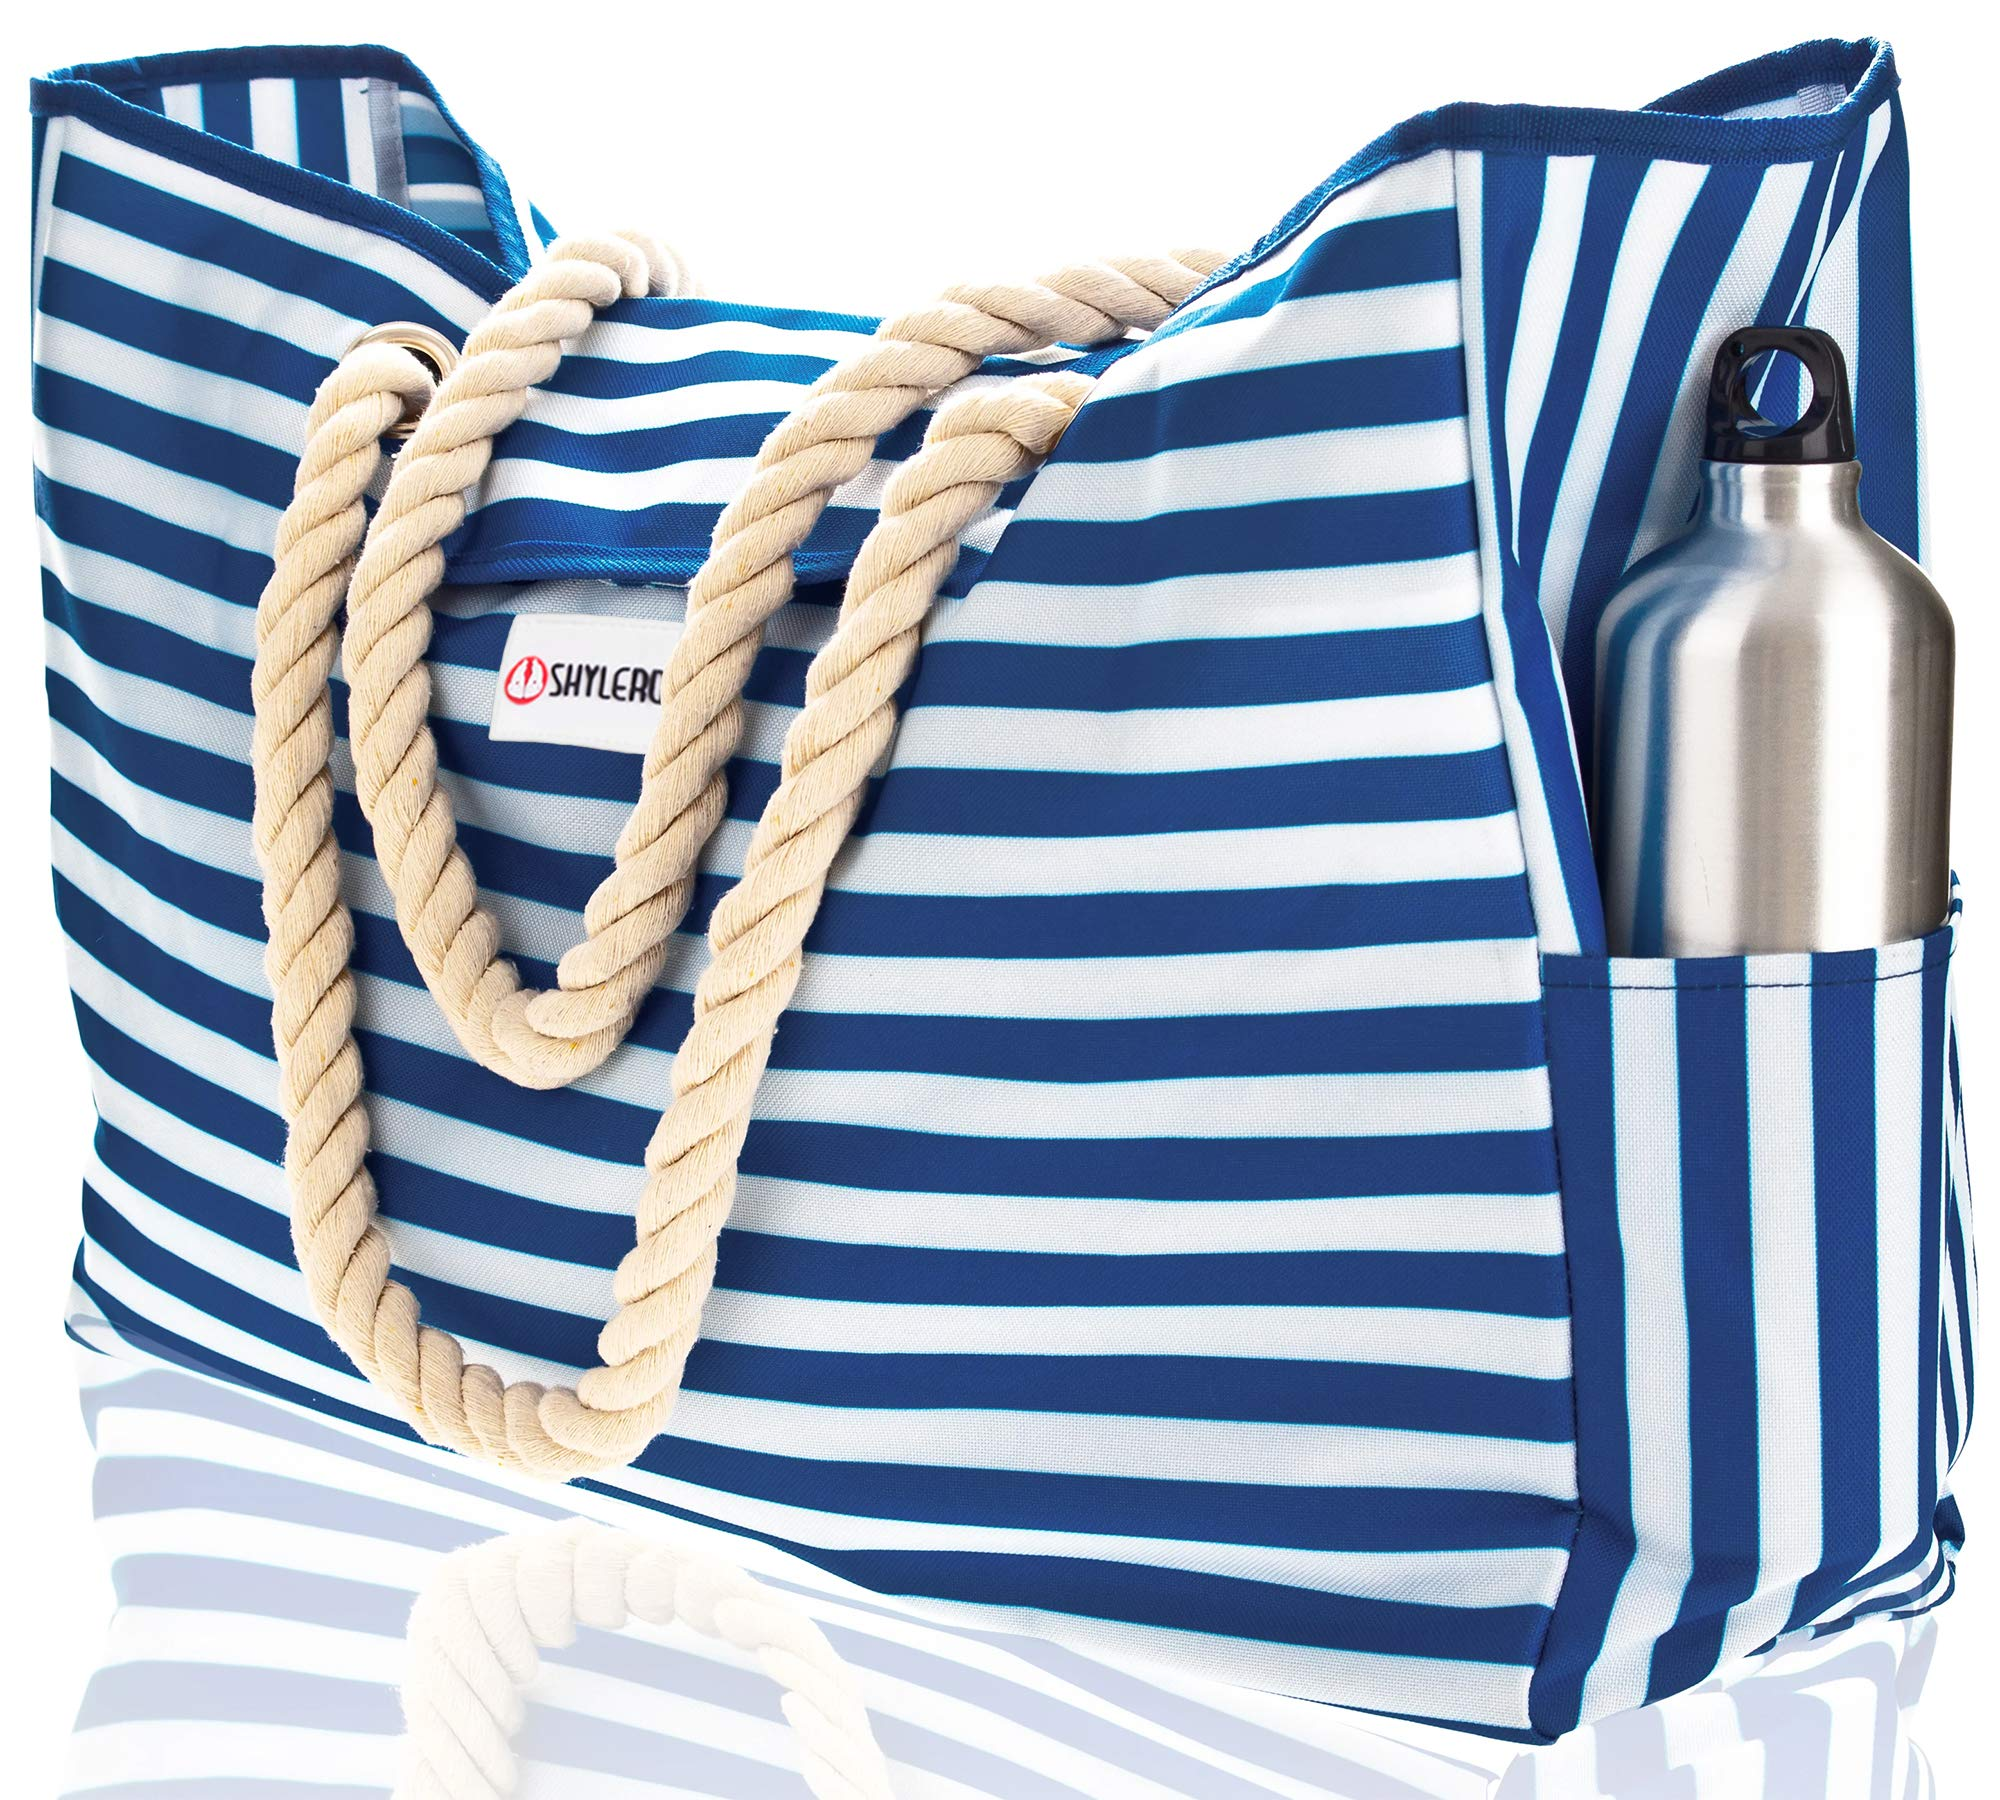 """Beach Bag XL. 100% Waterproof. L17""""xH15""""xW6"""" w Cotton Rope Handles, Top Magnet Clasp, Two Outside Pockets. Blue Stripes Shoulder Beach Tote Includes Phone Case, Built-In Key Holder and Bottle Opener"""